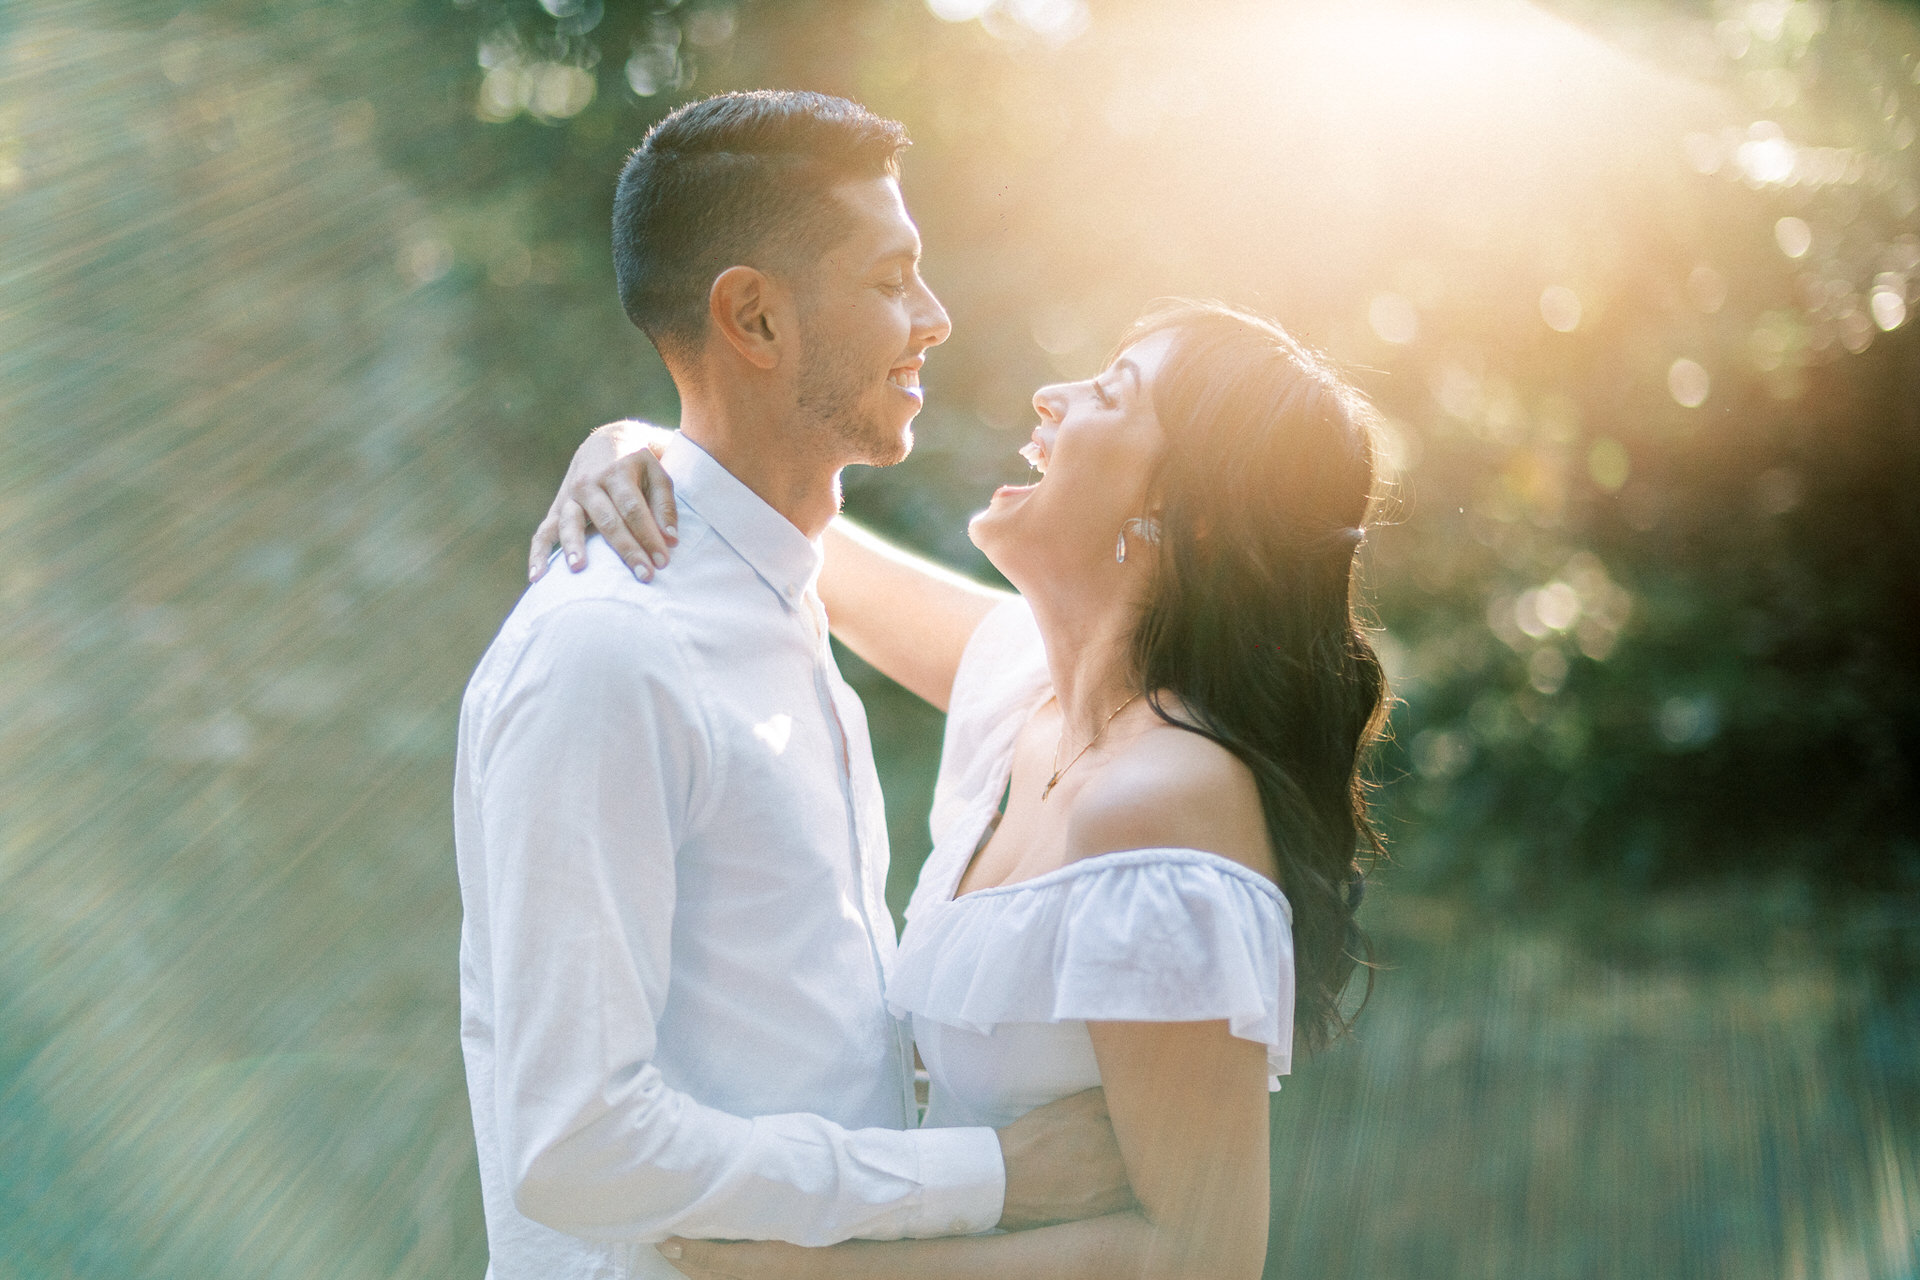 Brazil Elopement Couple Portrait Session | The groom and bride have a minute of relaxation and joy alone